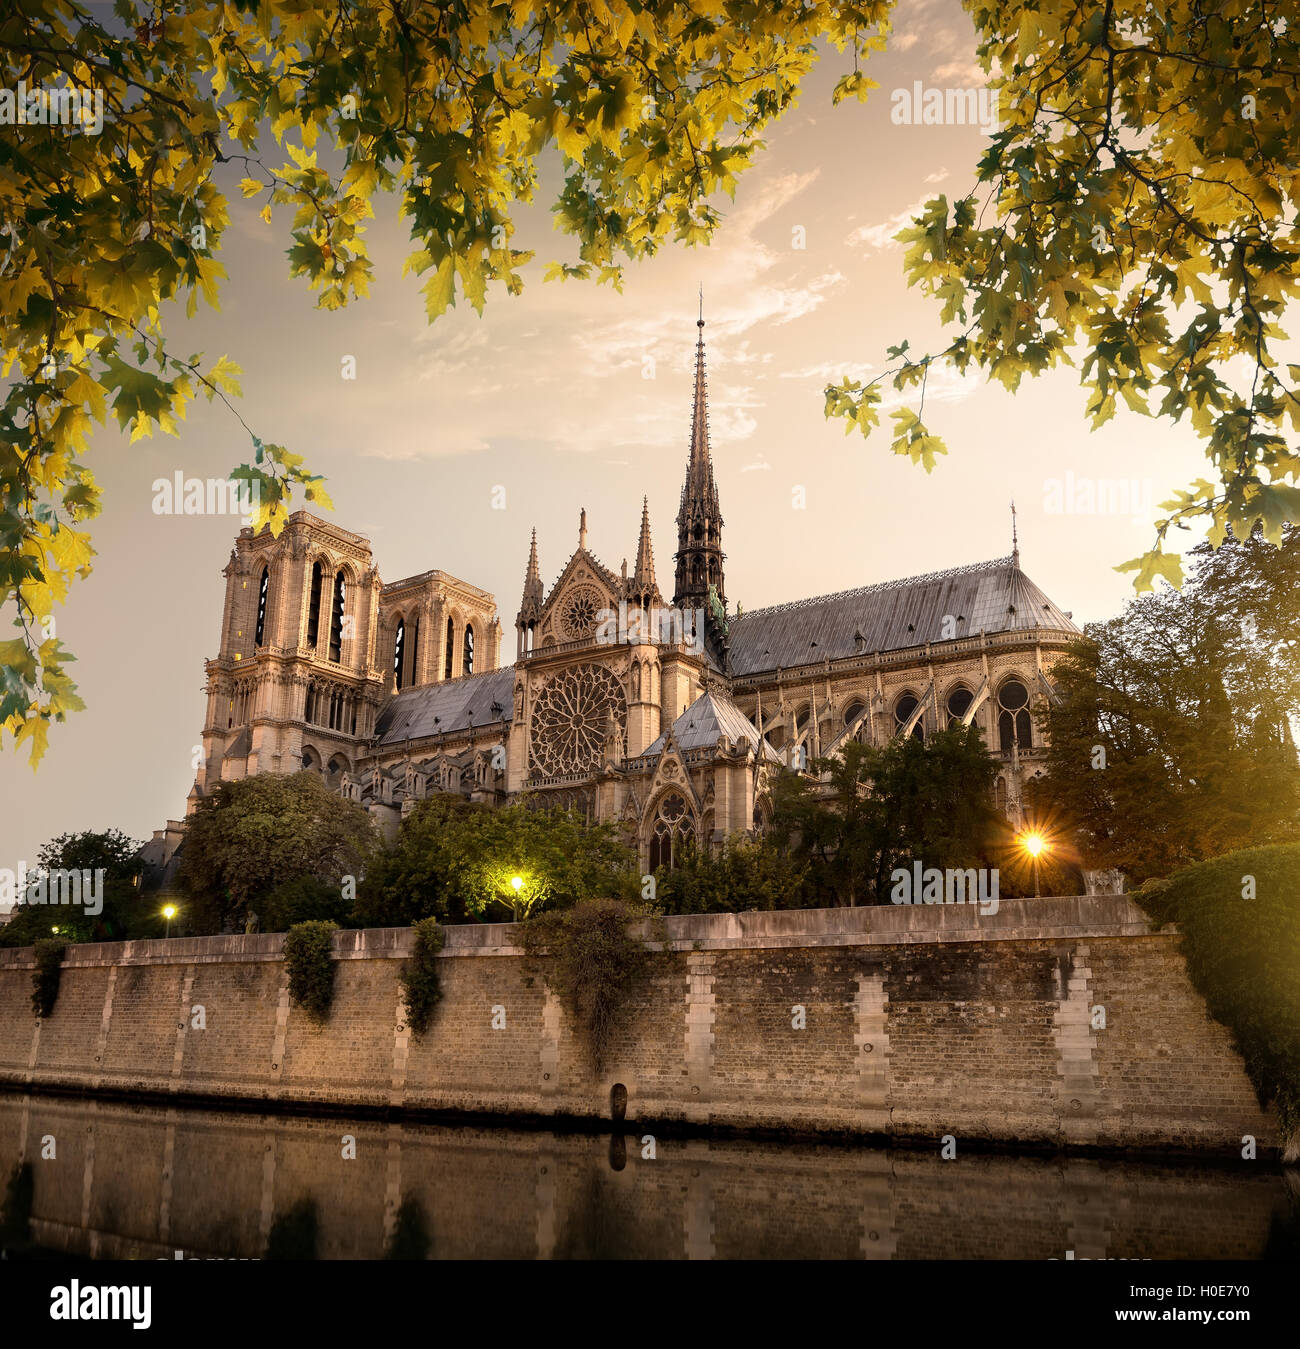 Notre Dame in Paris at sunset, France - Stock Image